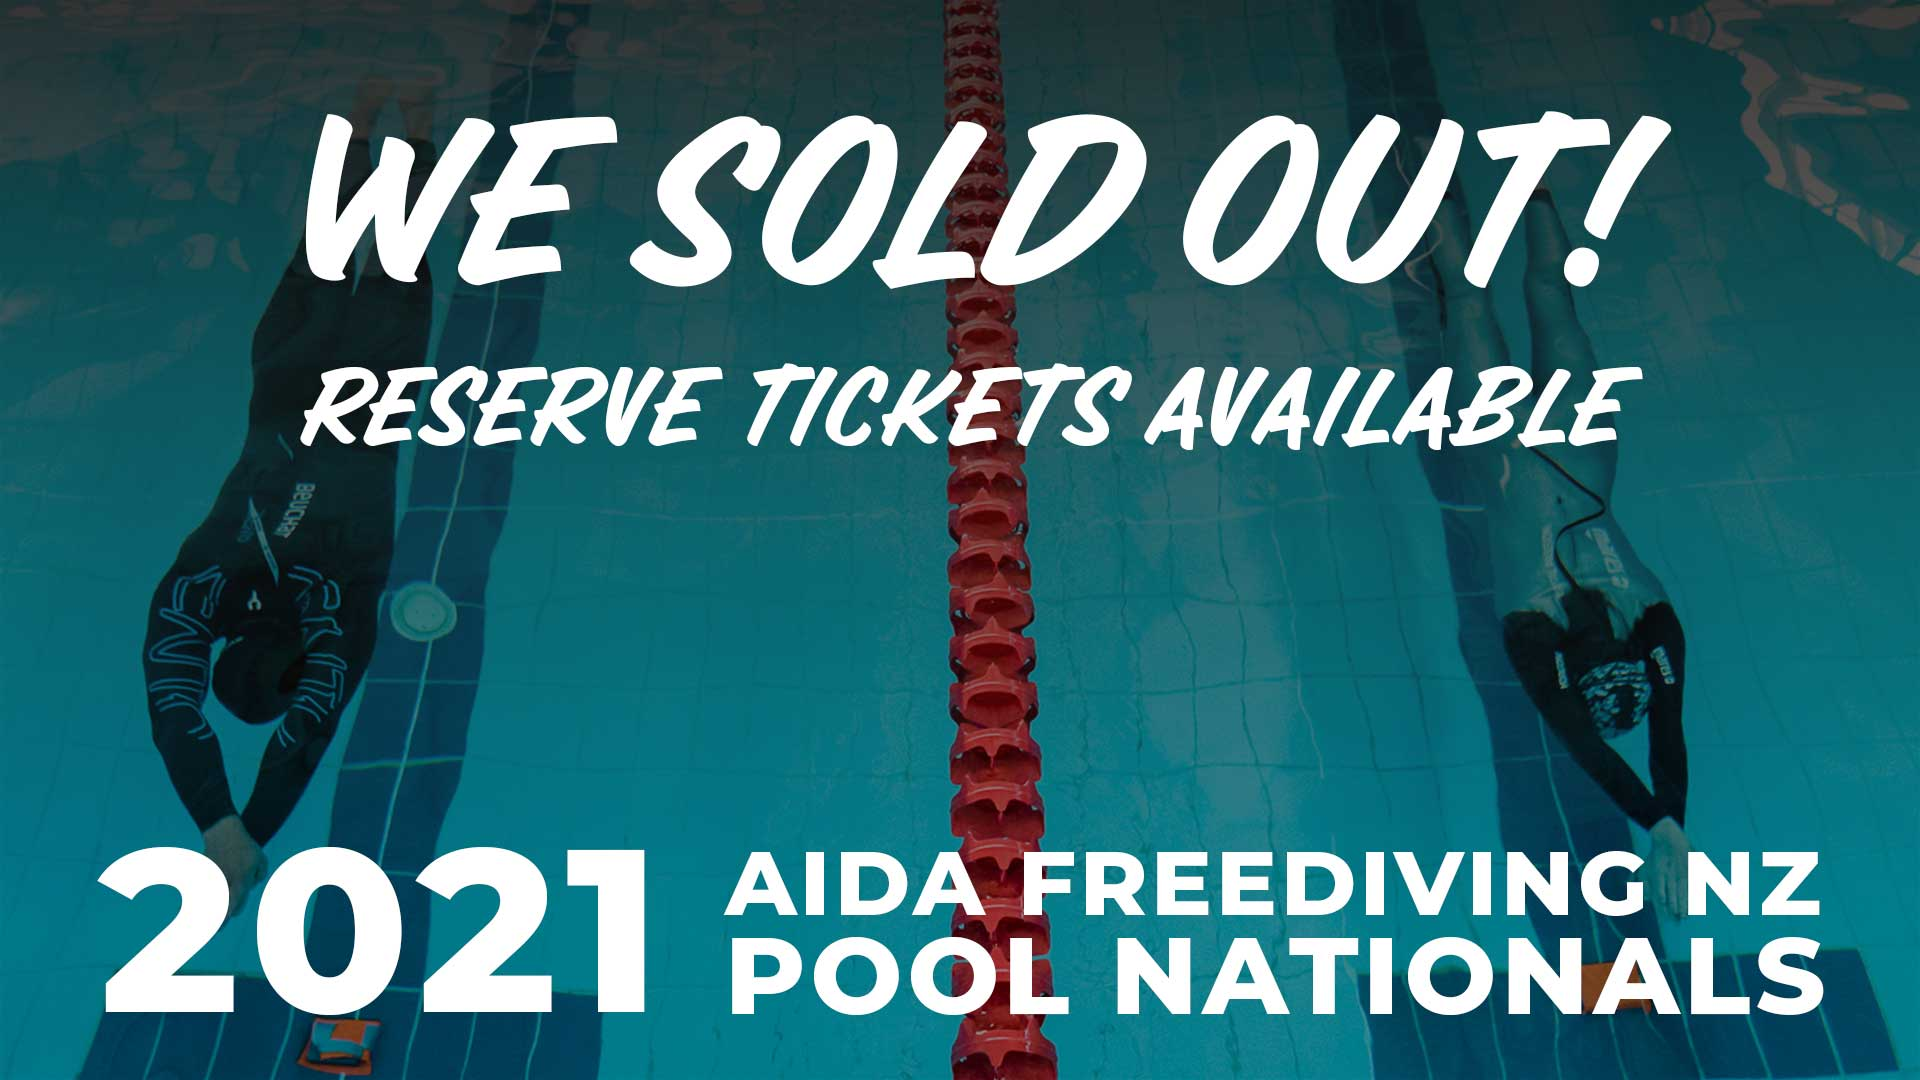 Pool Nationals 2021 SOLD OUT – Reserve tickets available